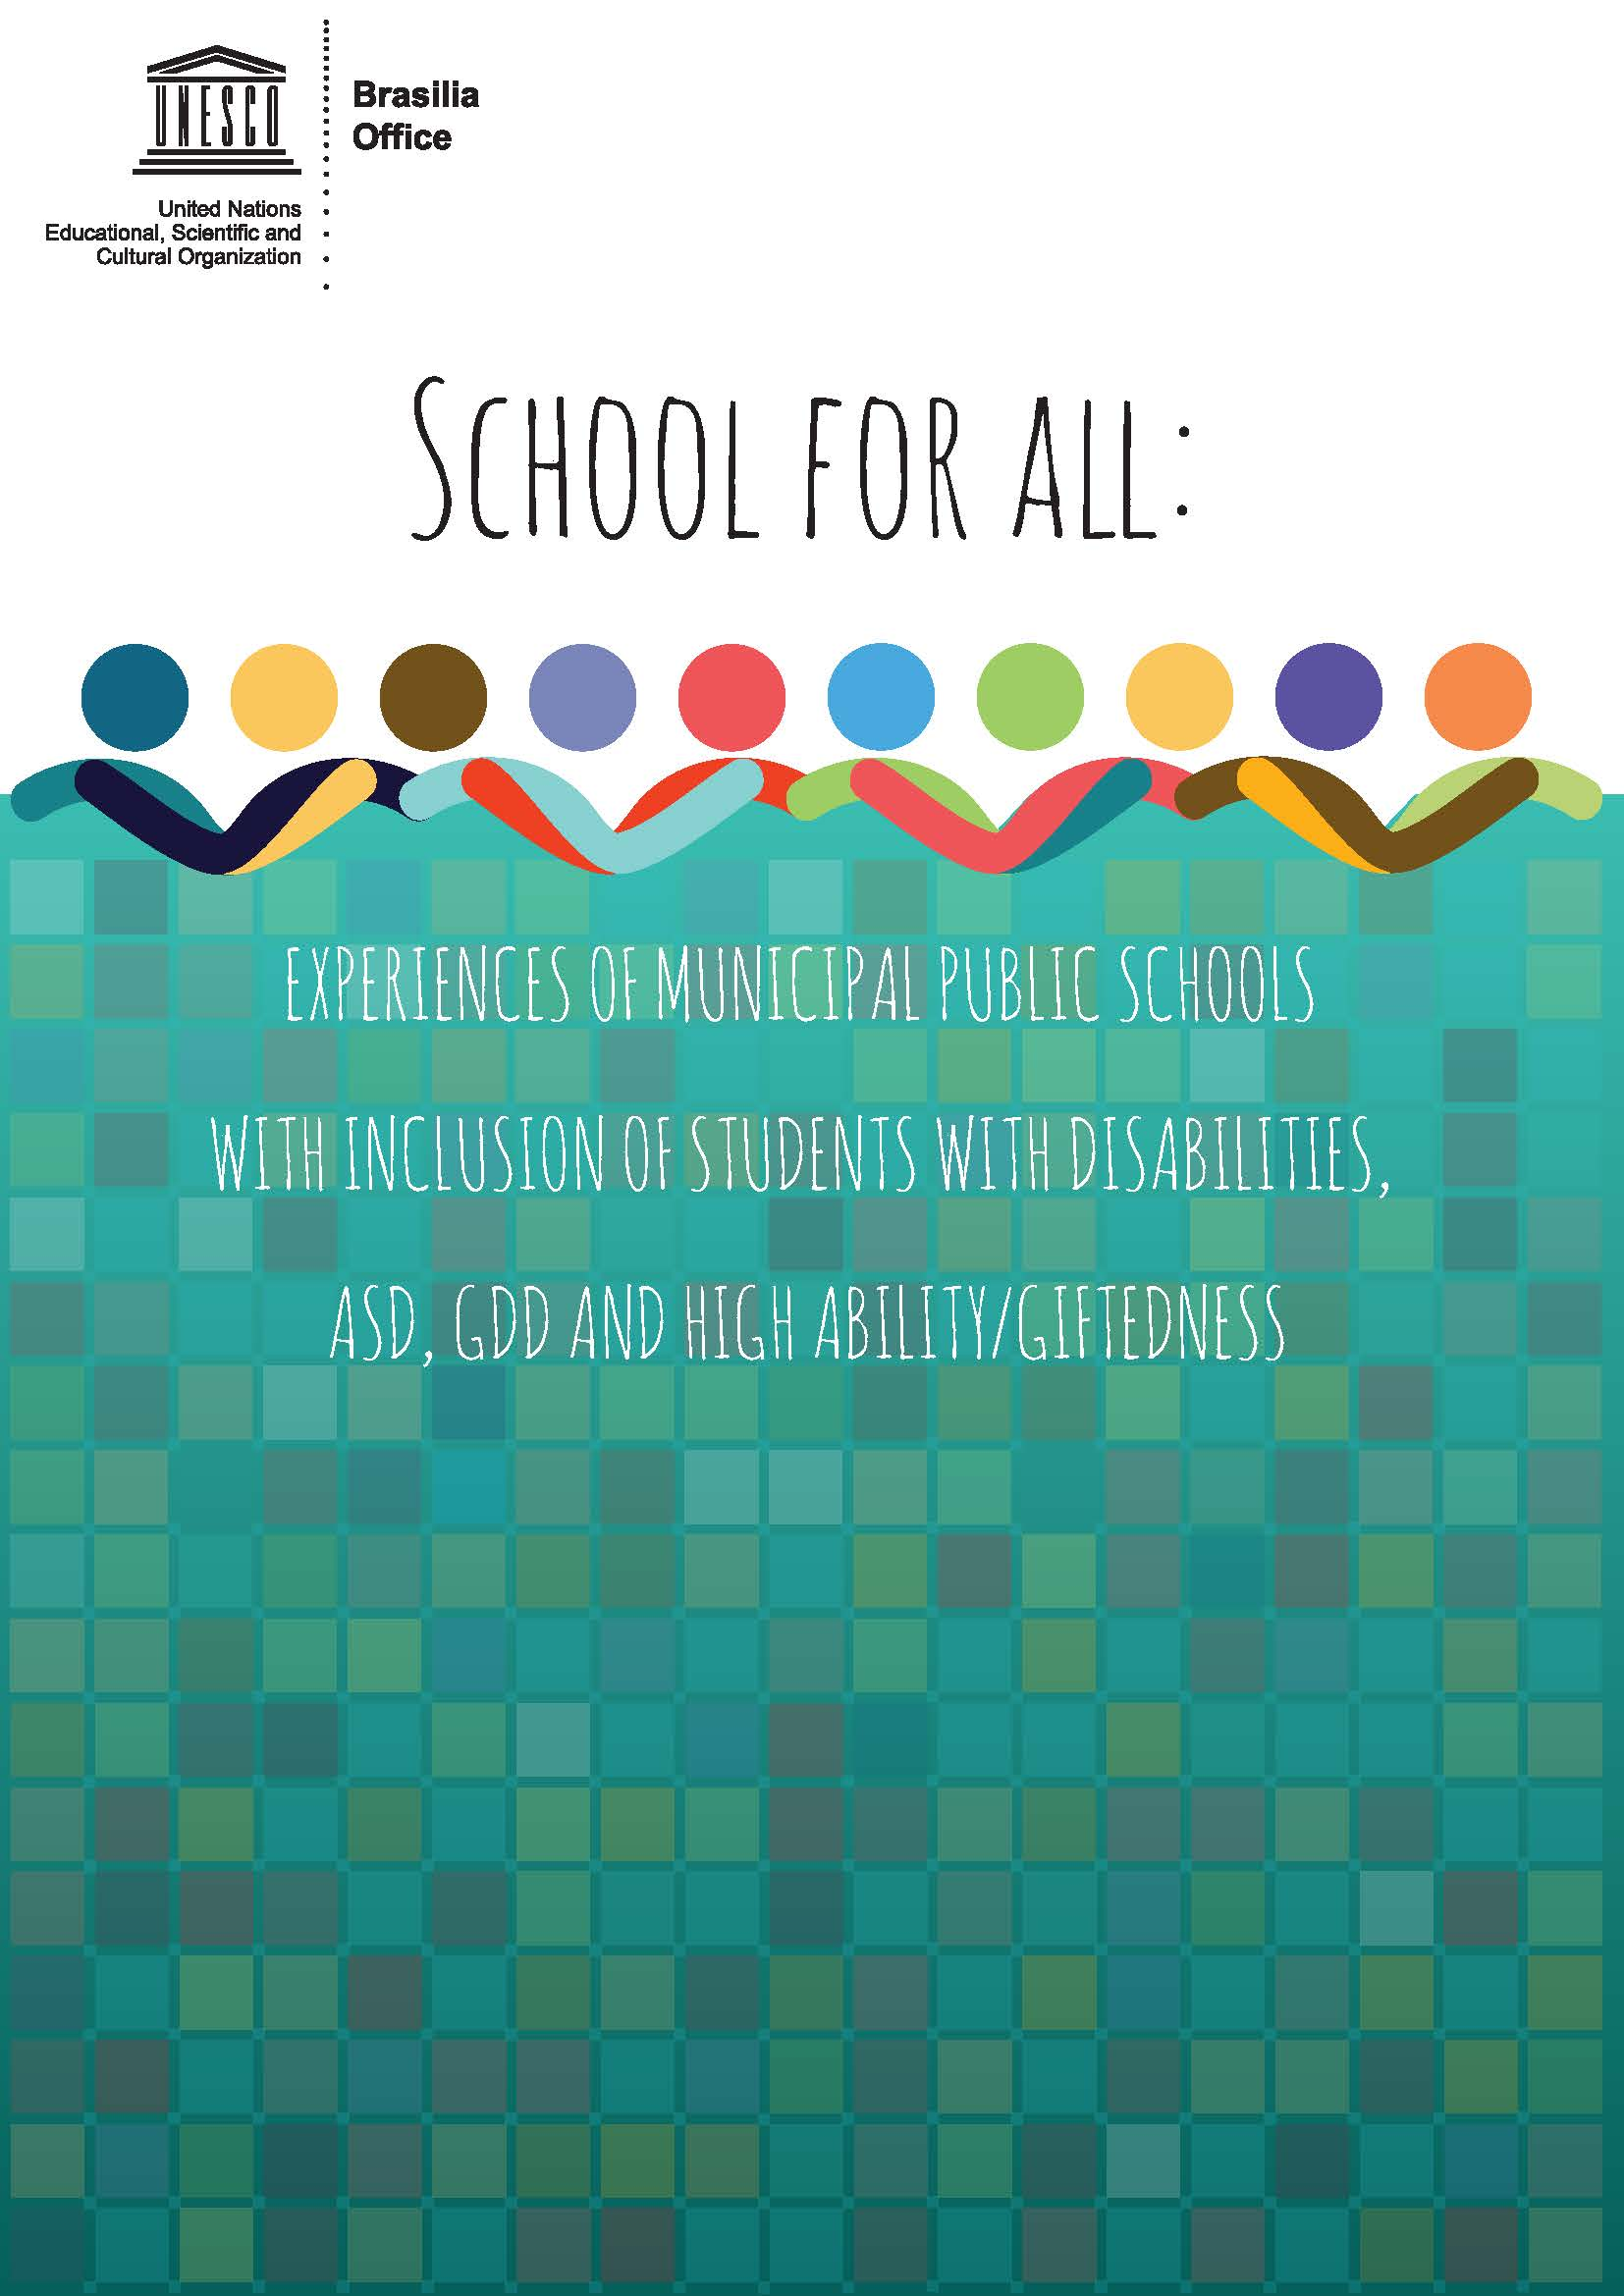 School for All: Experiences of Municipal Public Schools with inclusion of students with disabilities, ASD, GDD, and high ability giftedness